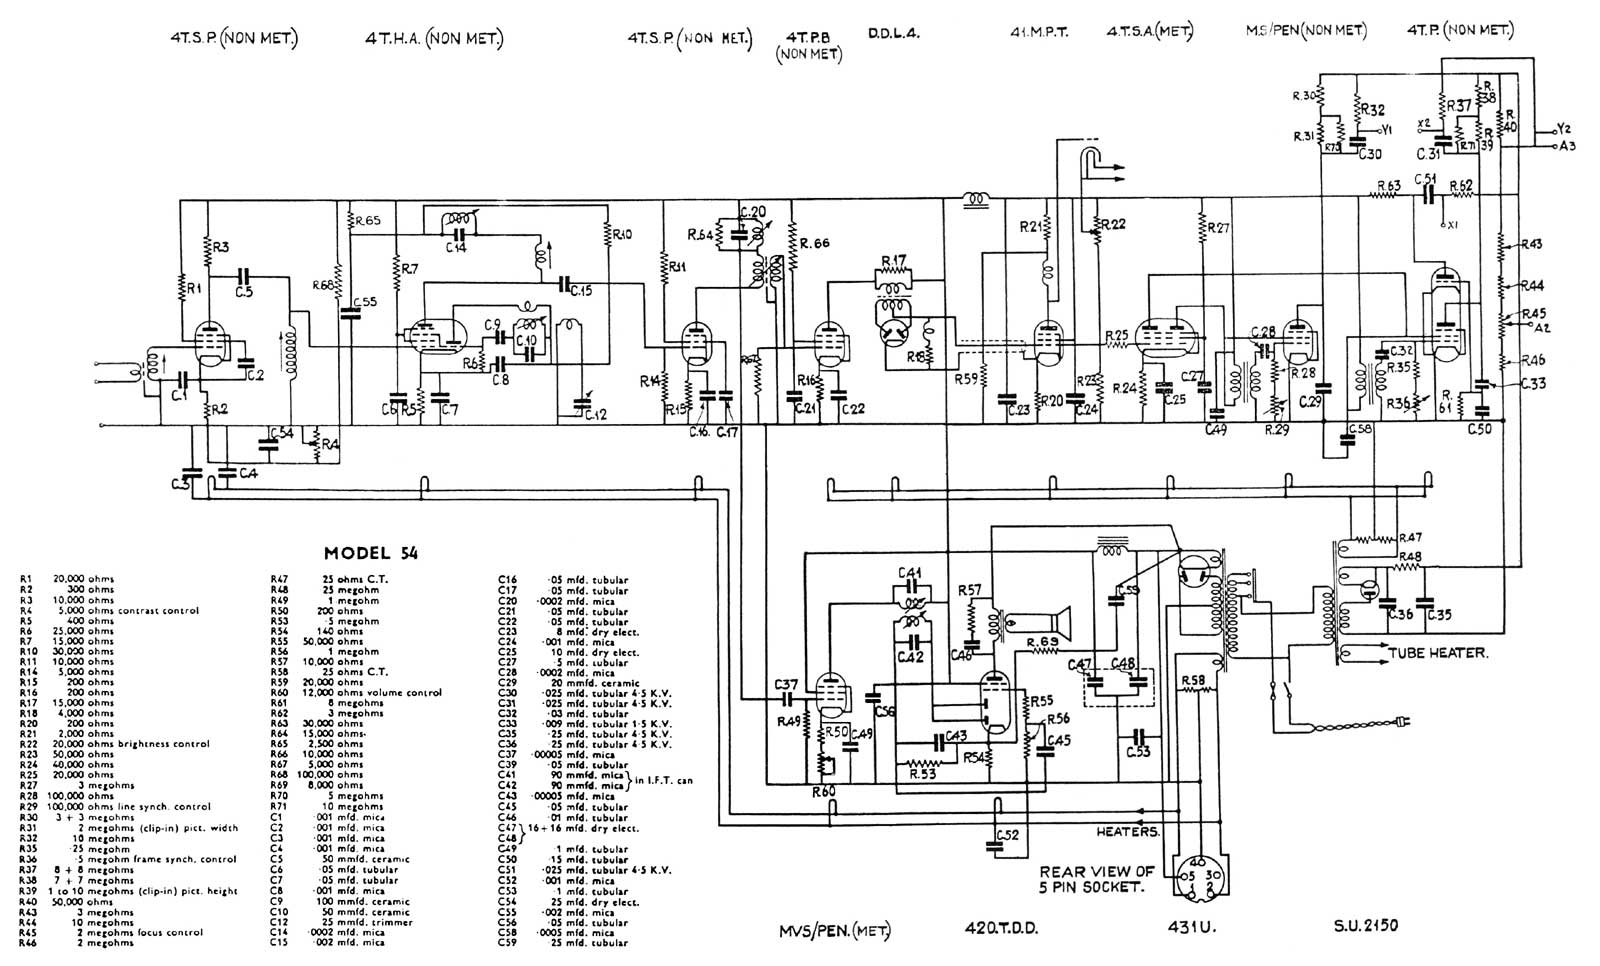 Panasonic Hf 950 Wiring Diagram Free Download Car Stereo Harness Tv Diagrams Wire Center U2022